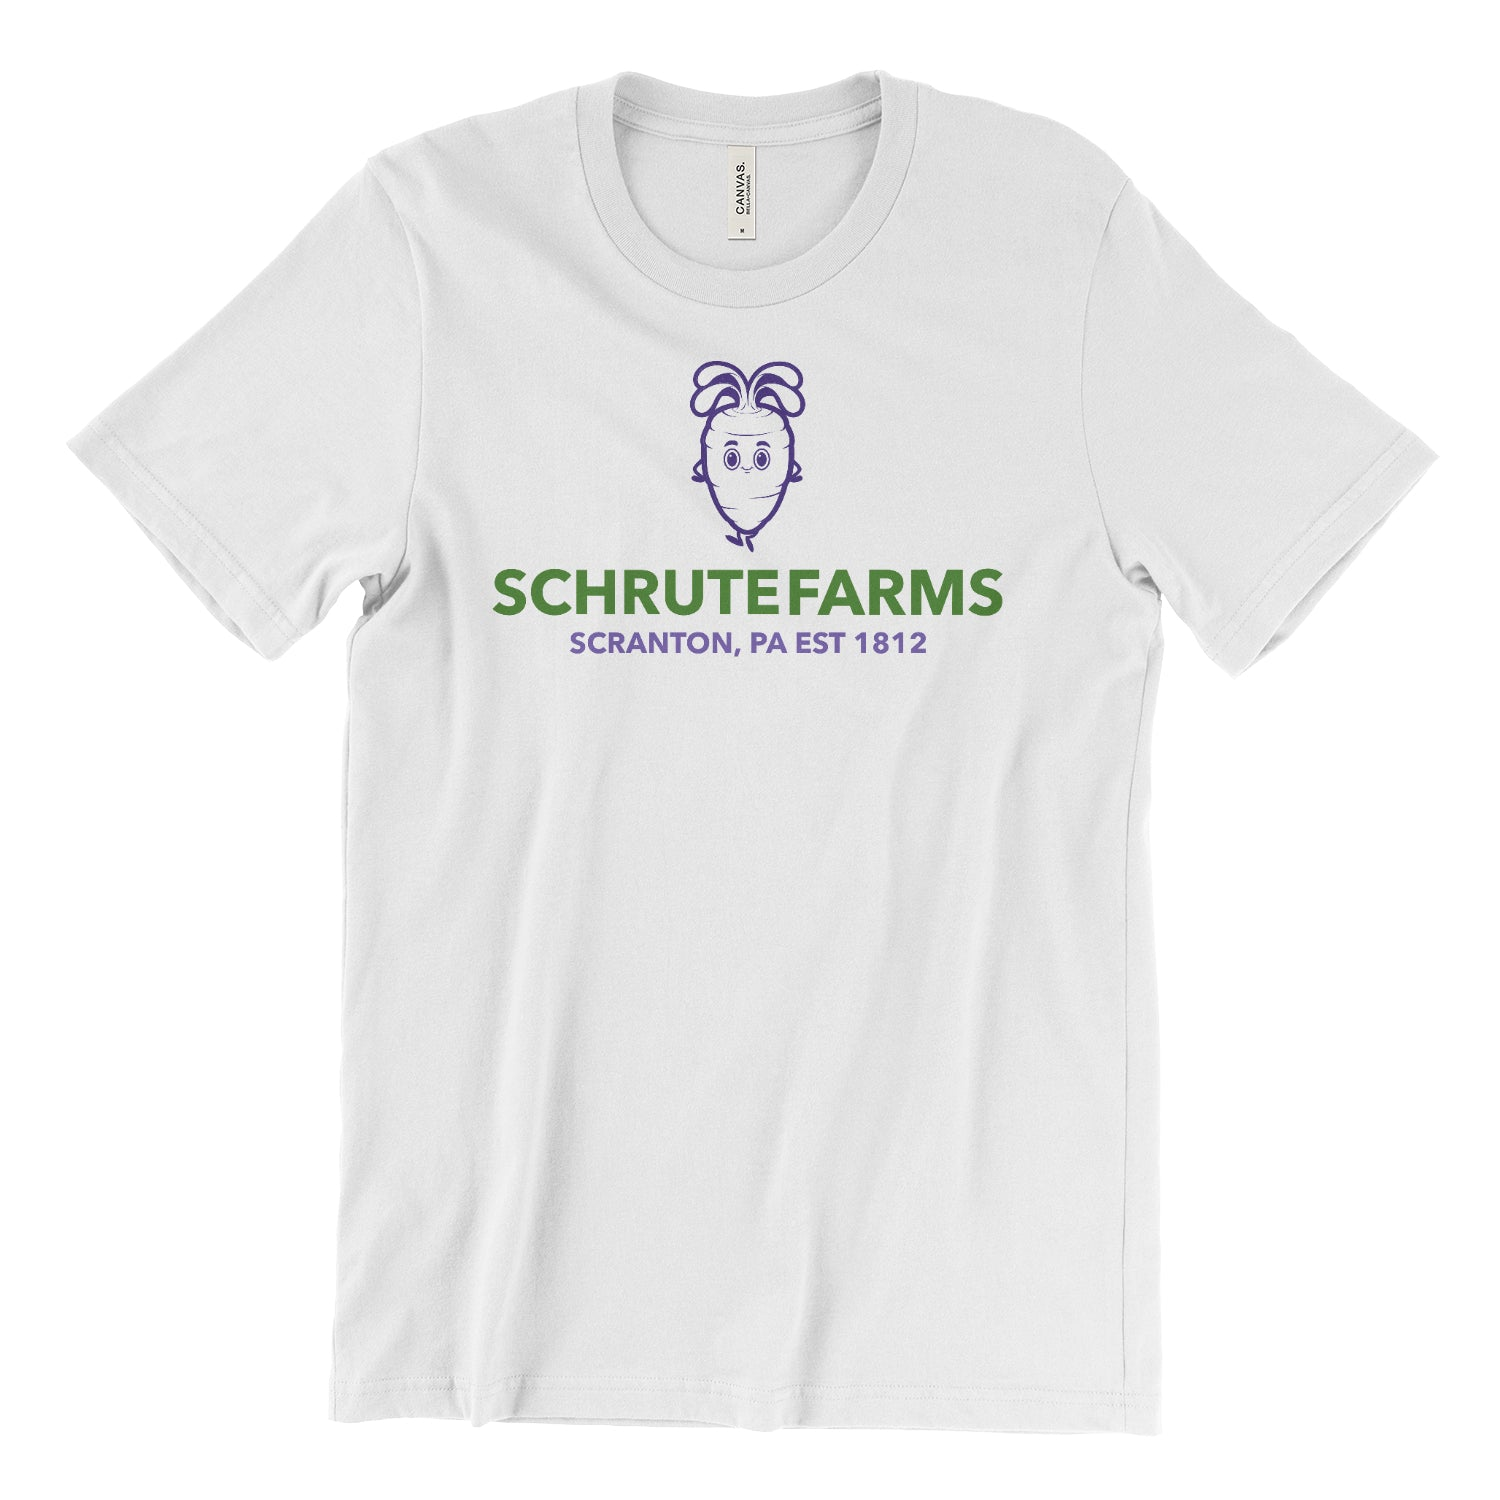 Schrute Farms Unisex Short-Sleeve T-Shirt